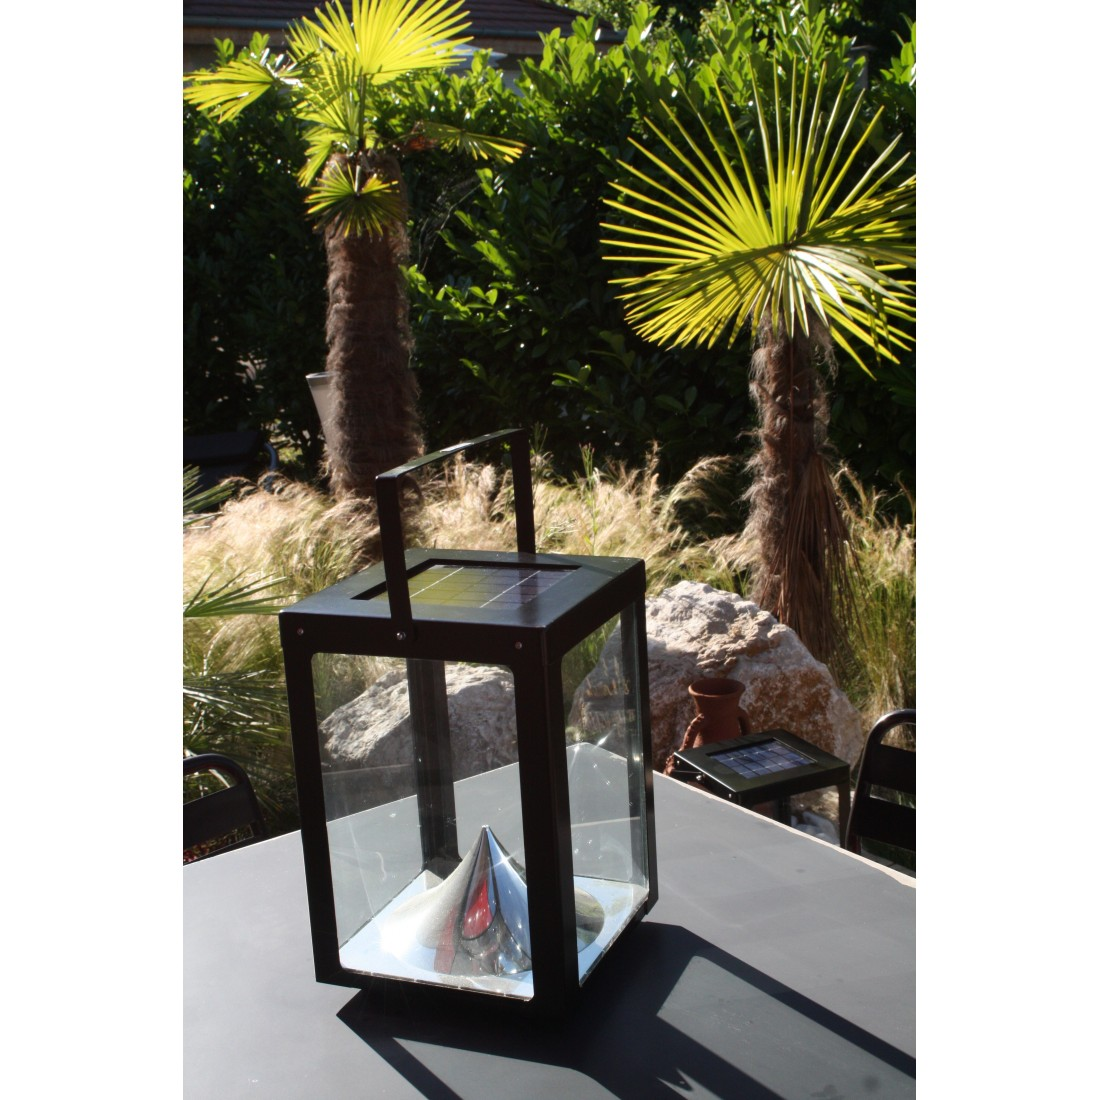 Photophore solaire grand model watt and home watt home - Grand photophore jardin ...